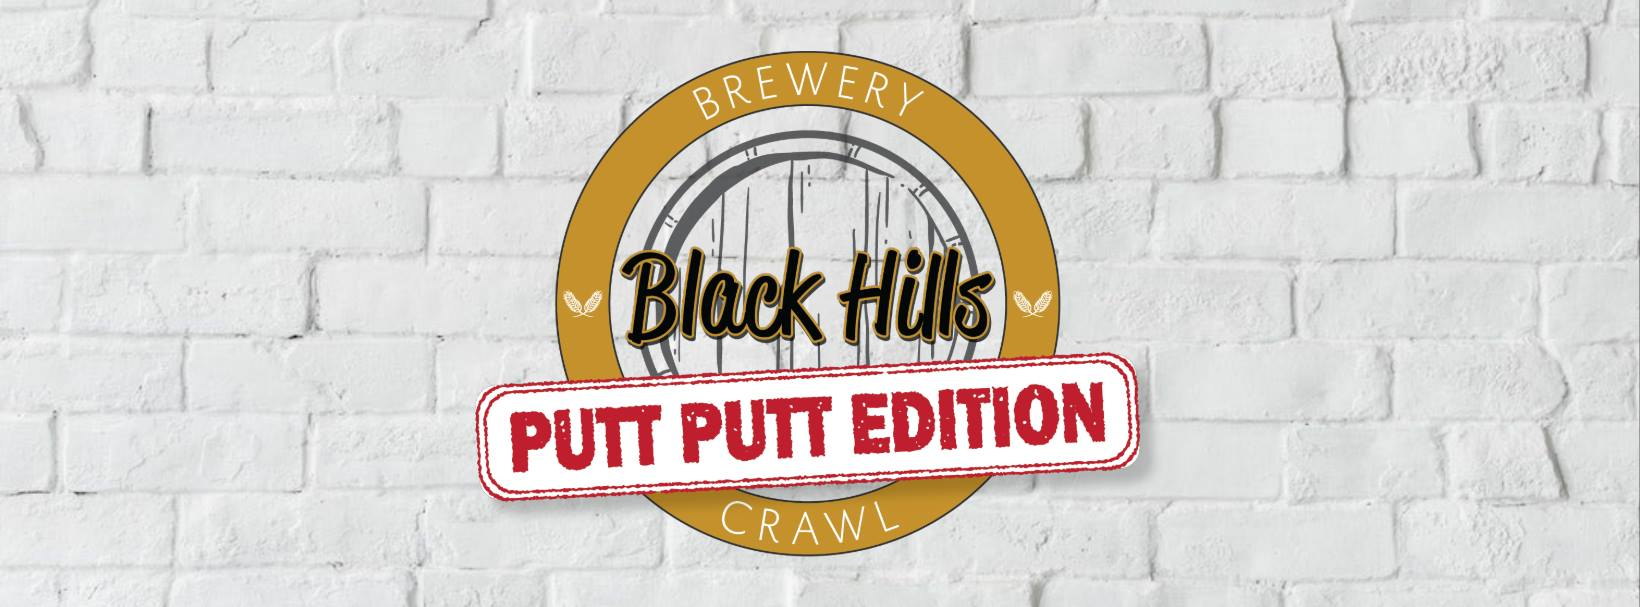 Black Hills Brewery Crawl - Putt Putt Edition in Rapid City, South Dakota